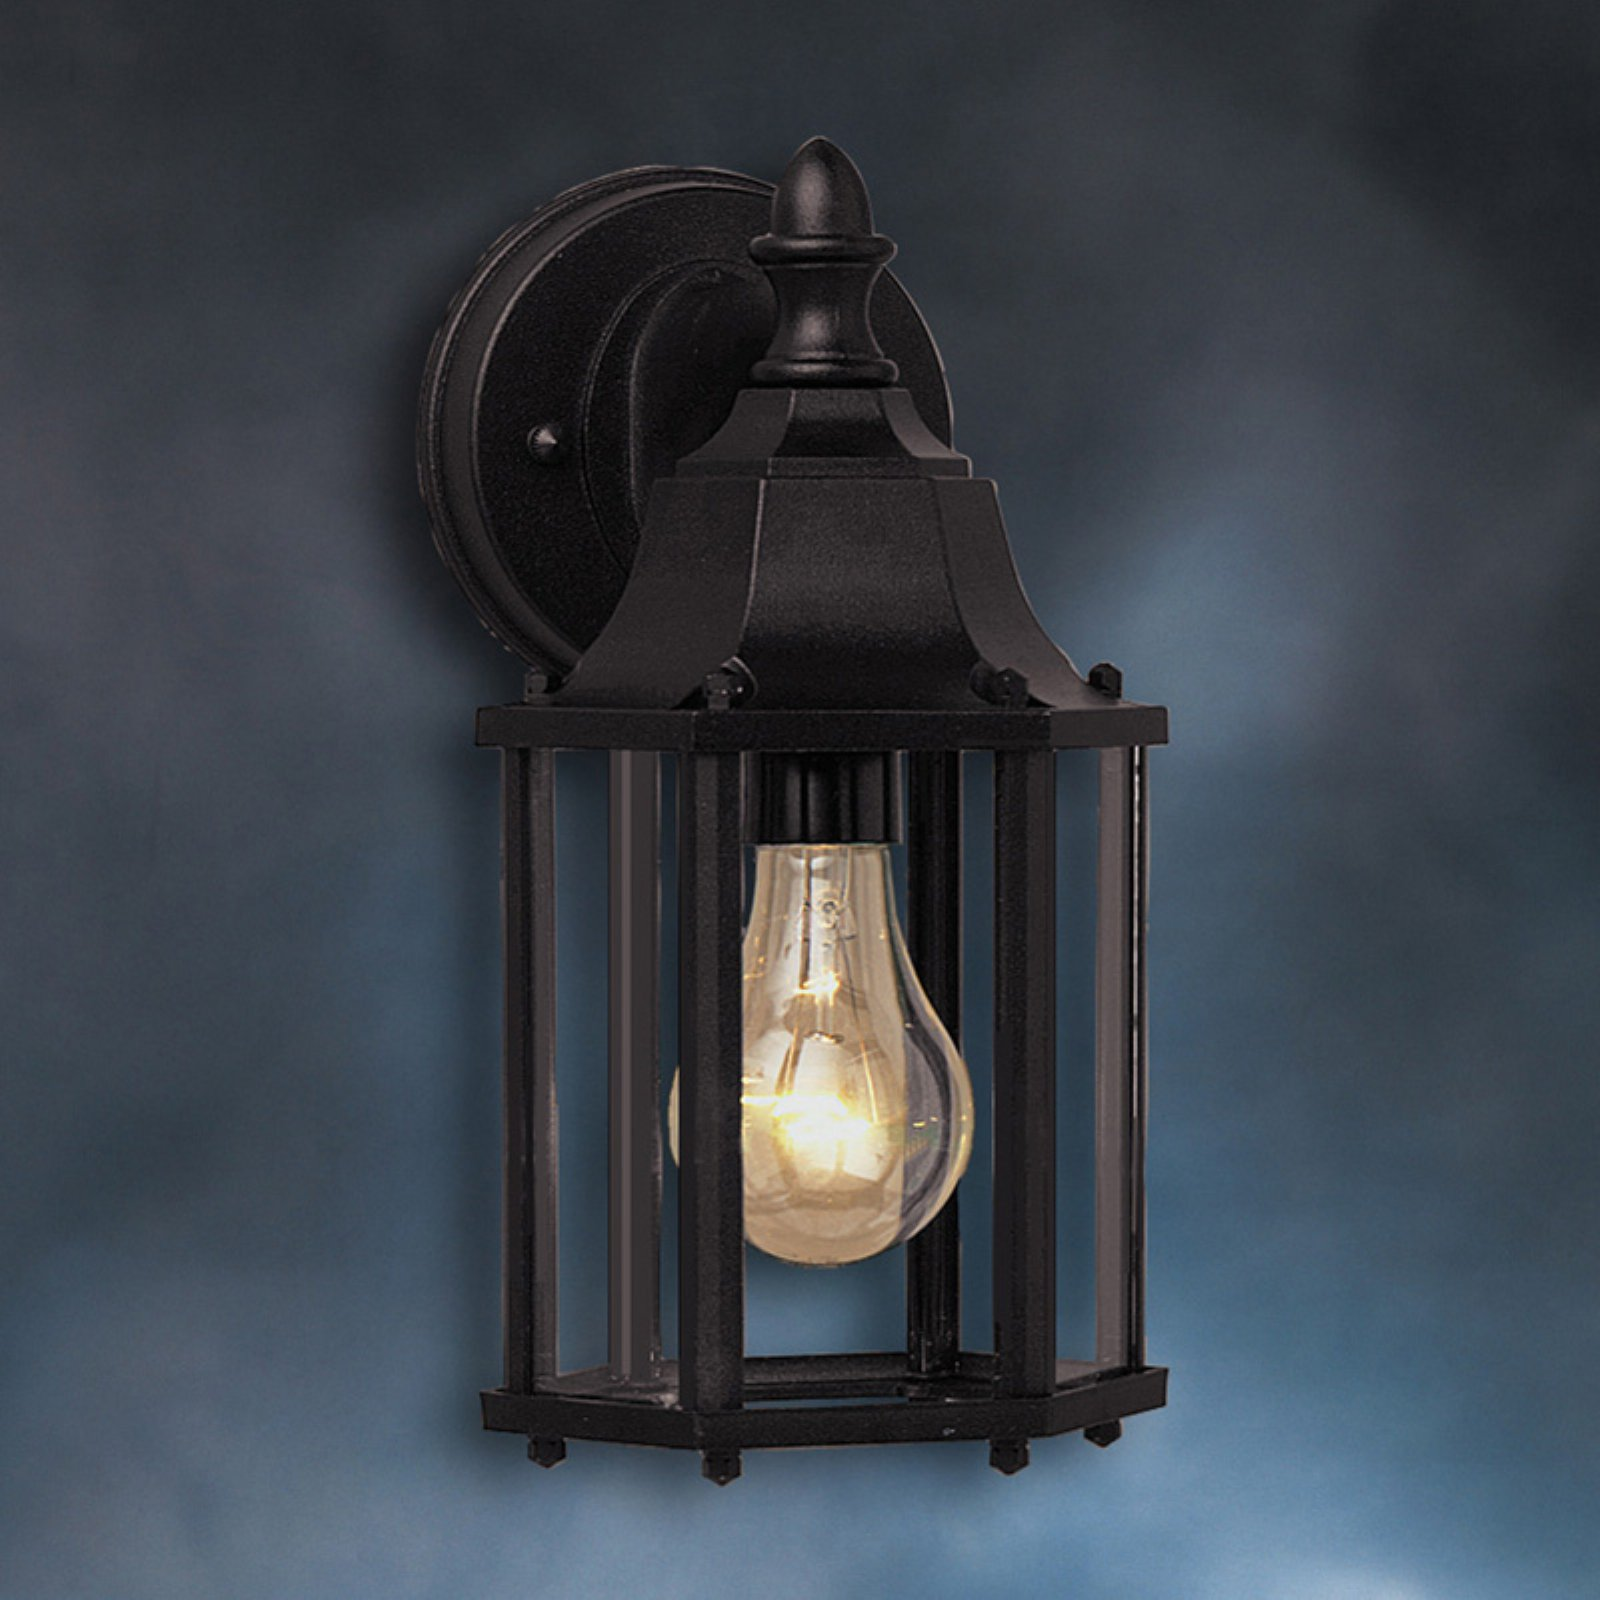 Kichler Chesapeake 9774 Outdoor Wall Lantern - 5.5 in.